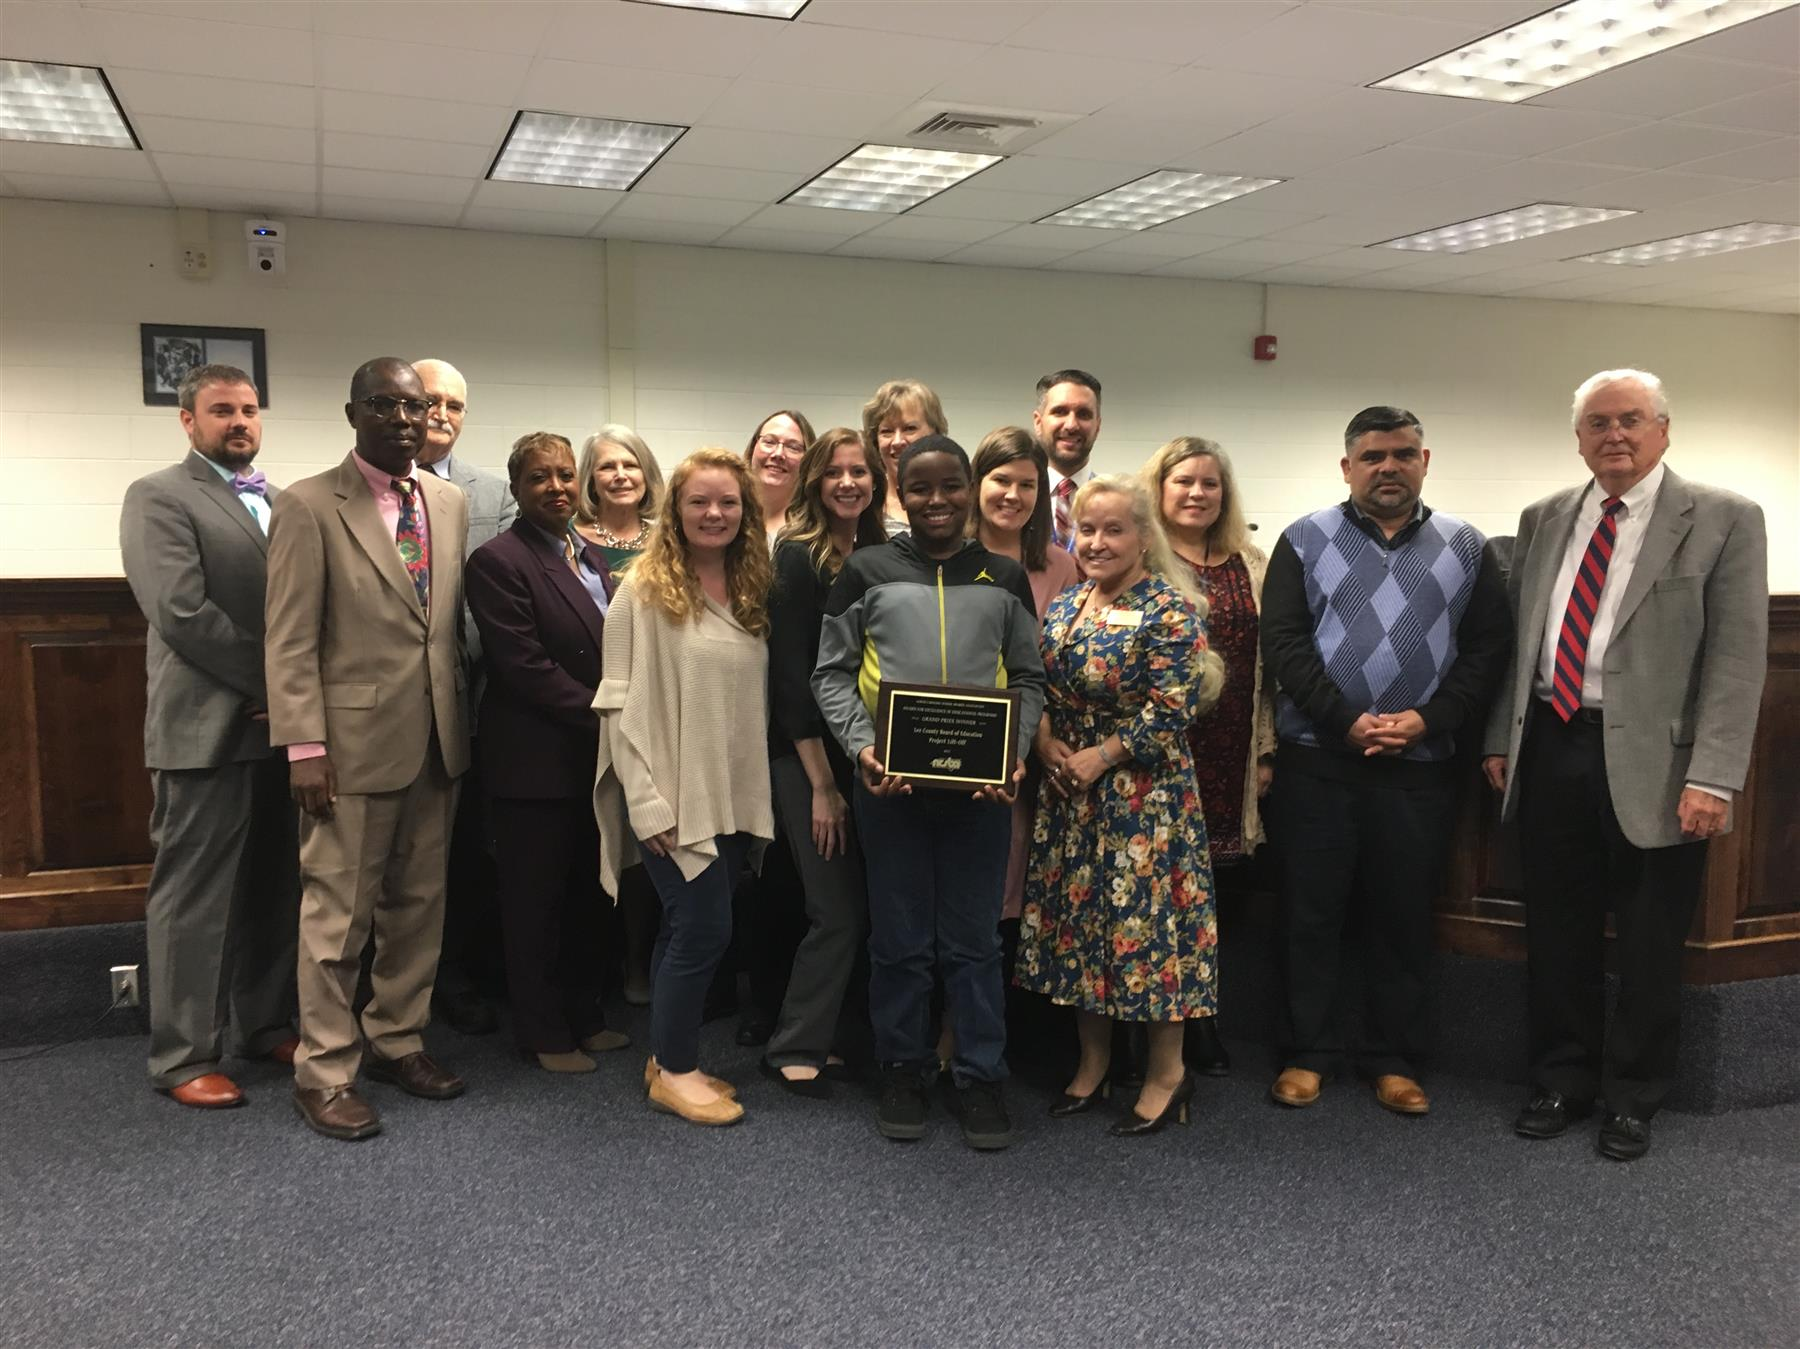 Dr. Johnnye Waller and her support staff receiving an award, with the Lee County Board of Education.